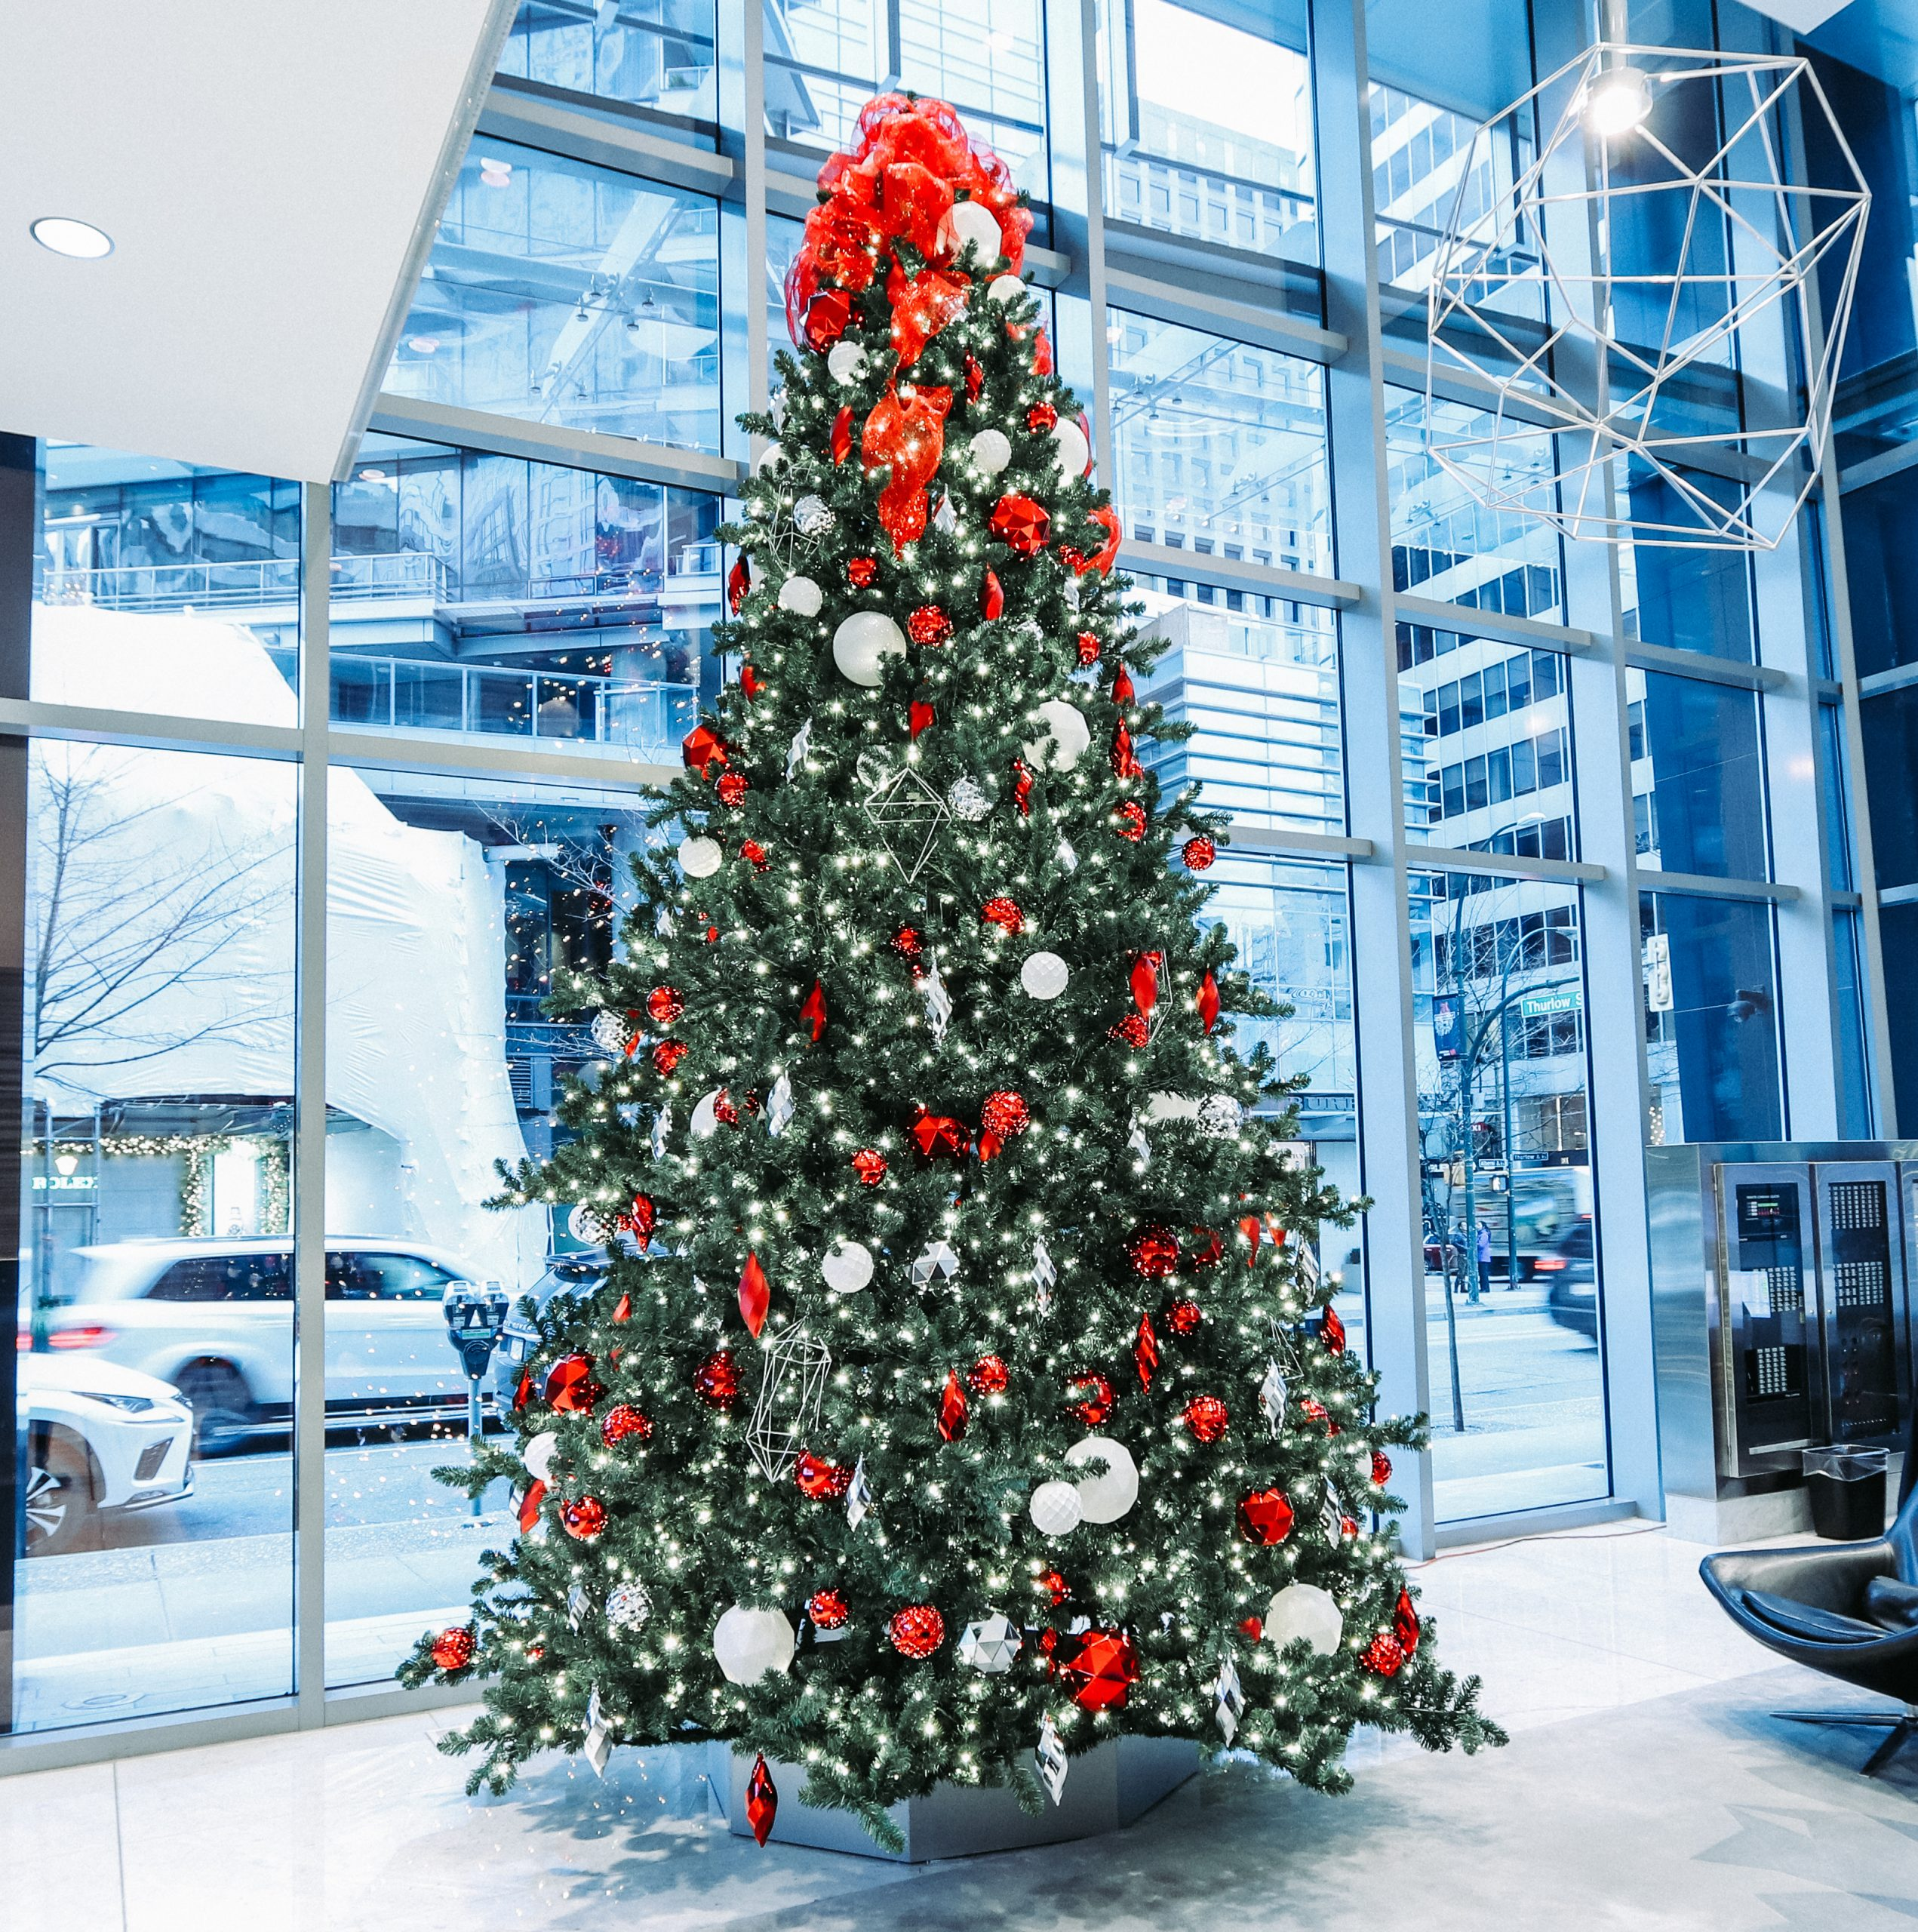 16 Tall Red White Silver Christmas Tree Office Lobby Holiday Decor Greenscape Design Decor